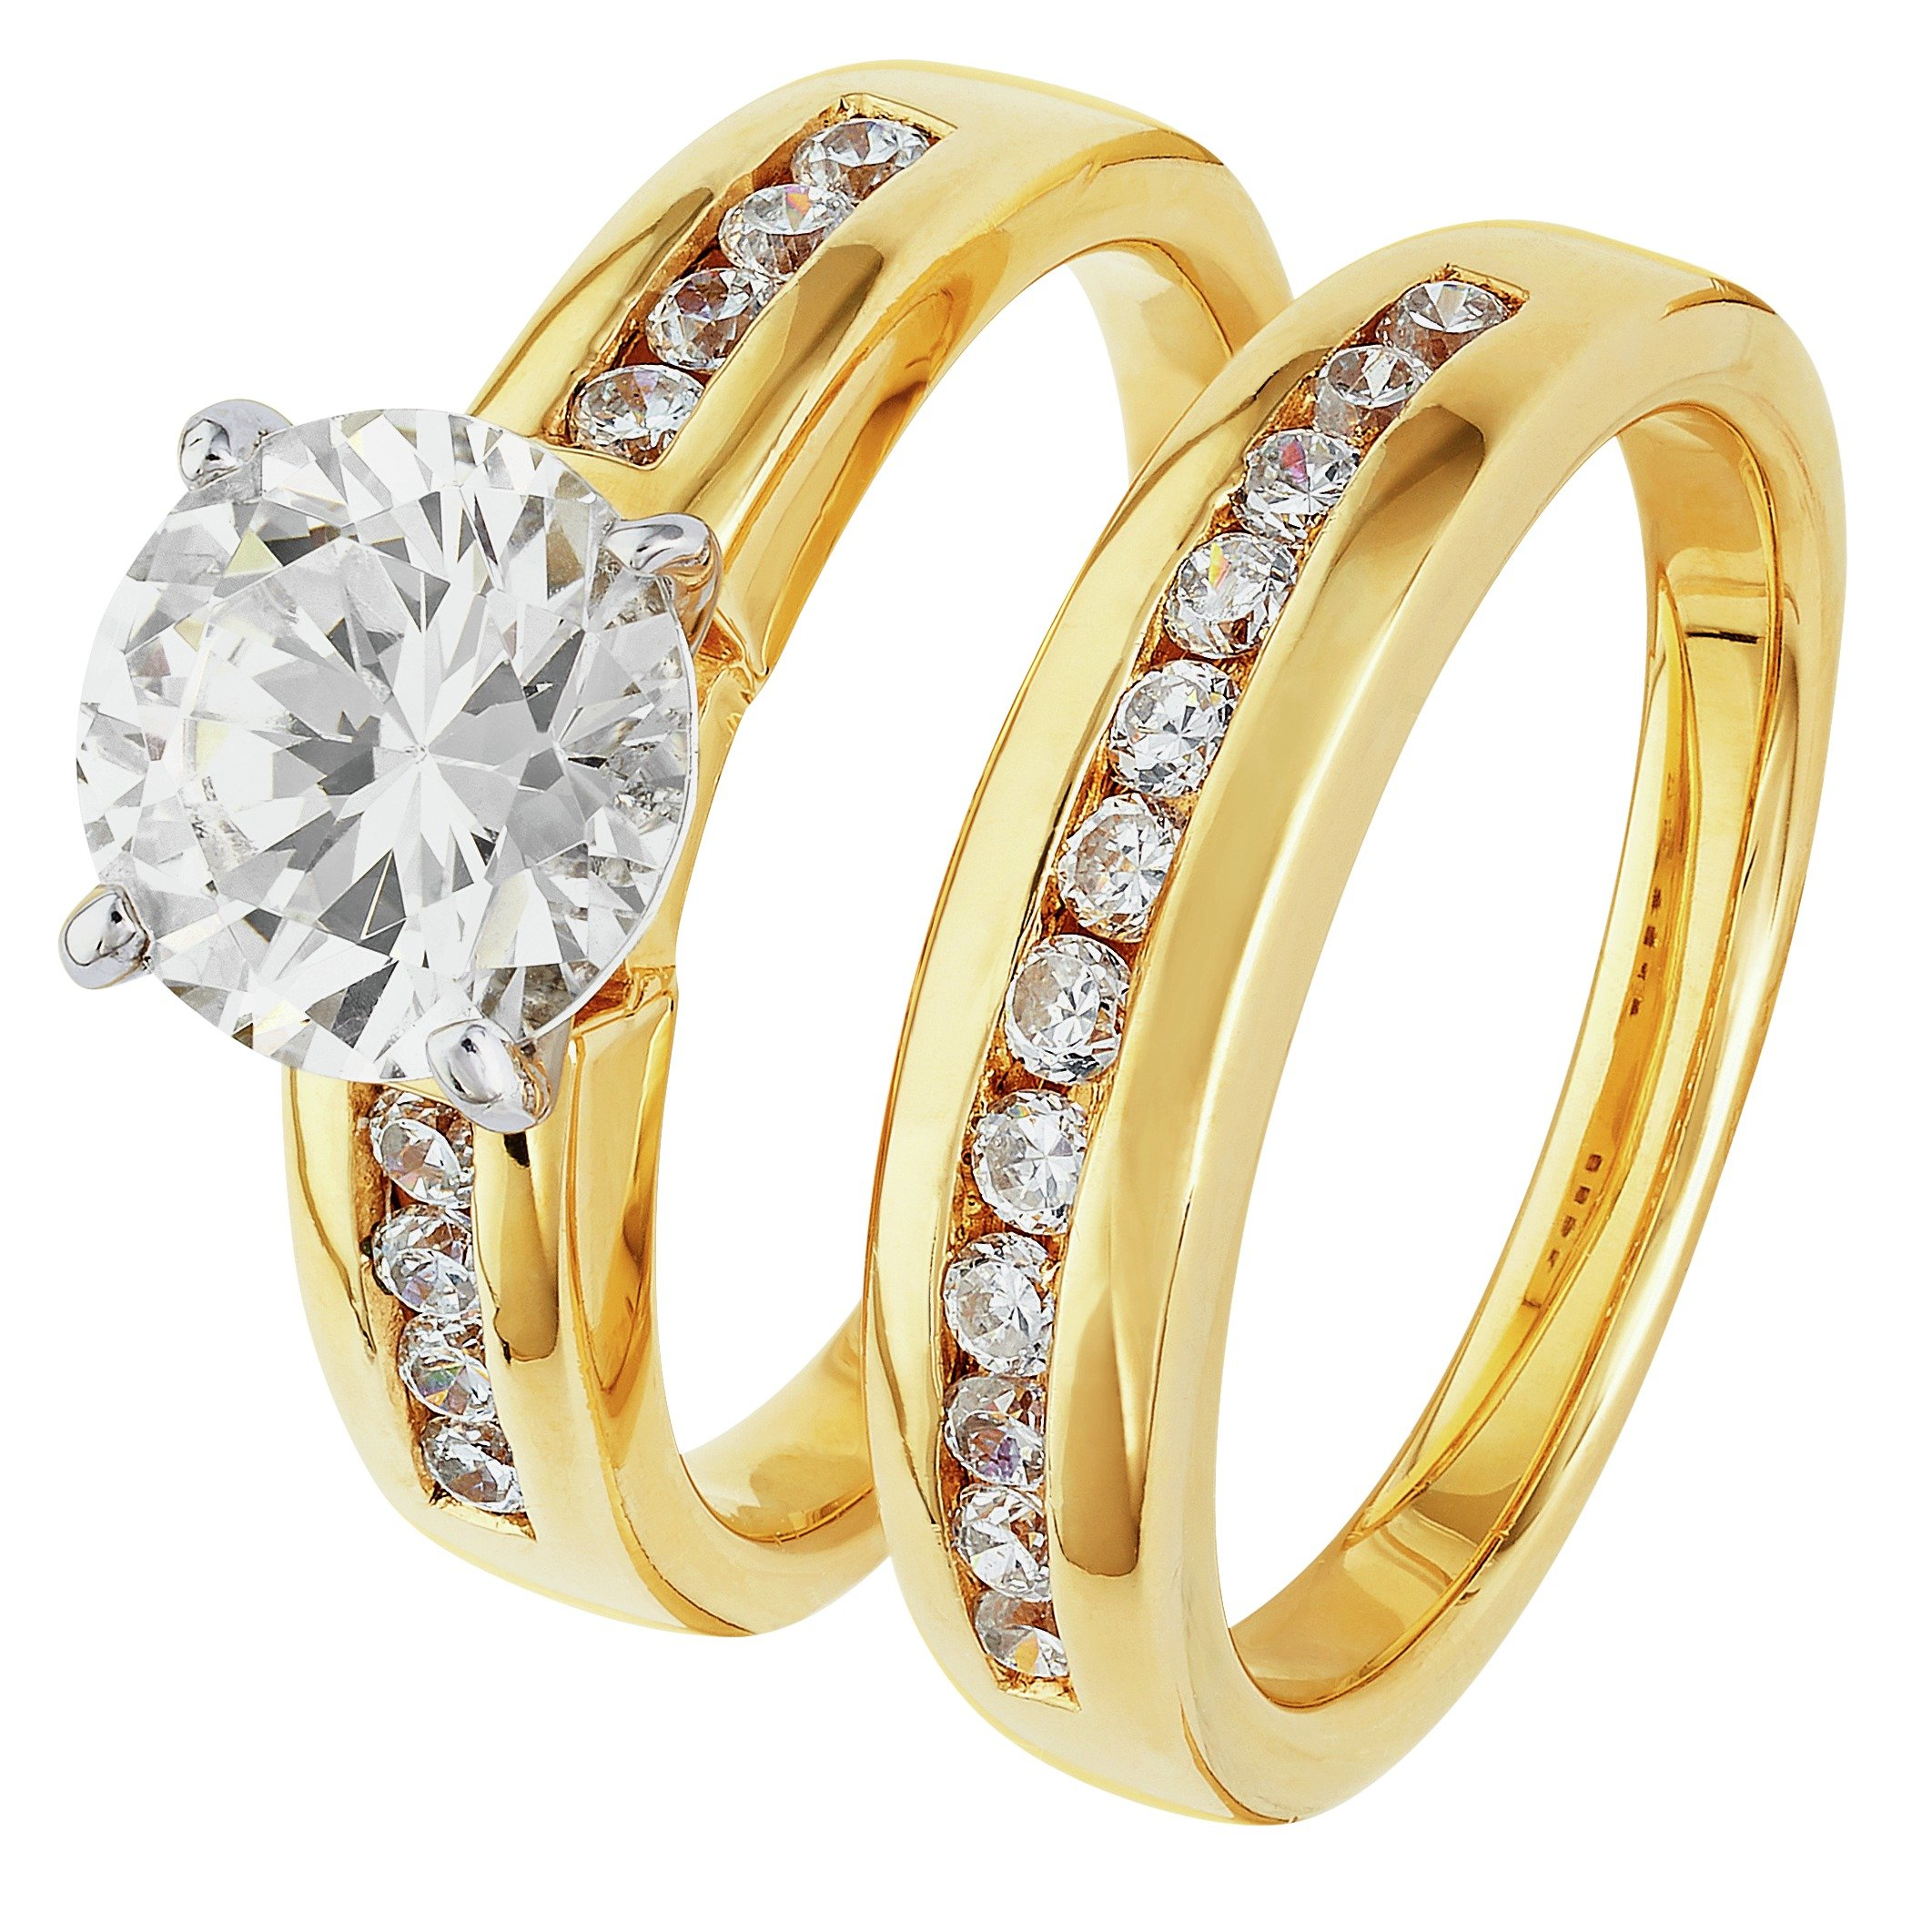 Revere 18ct Gold Plated Silver 2.00ct Look CZ Ring Set